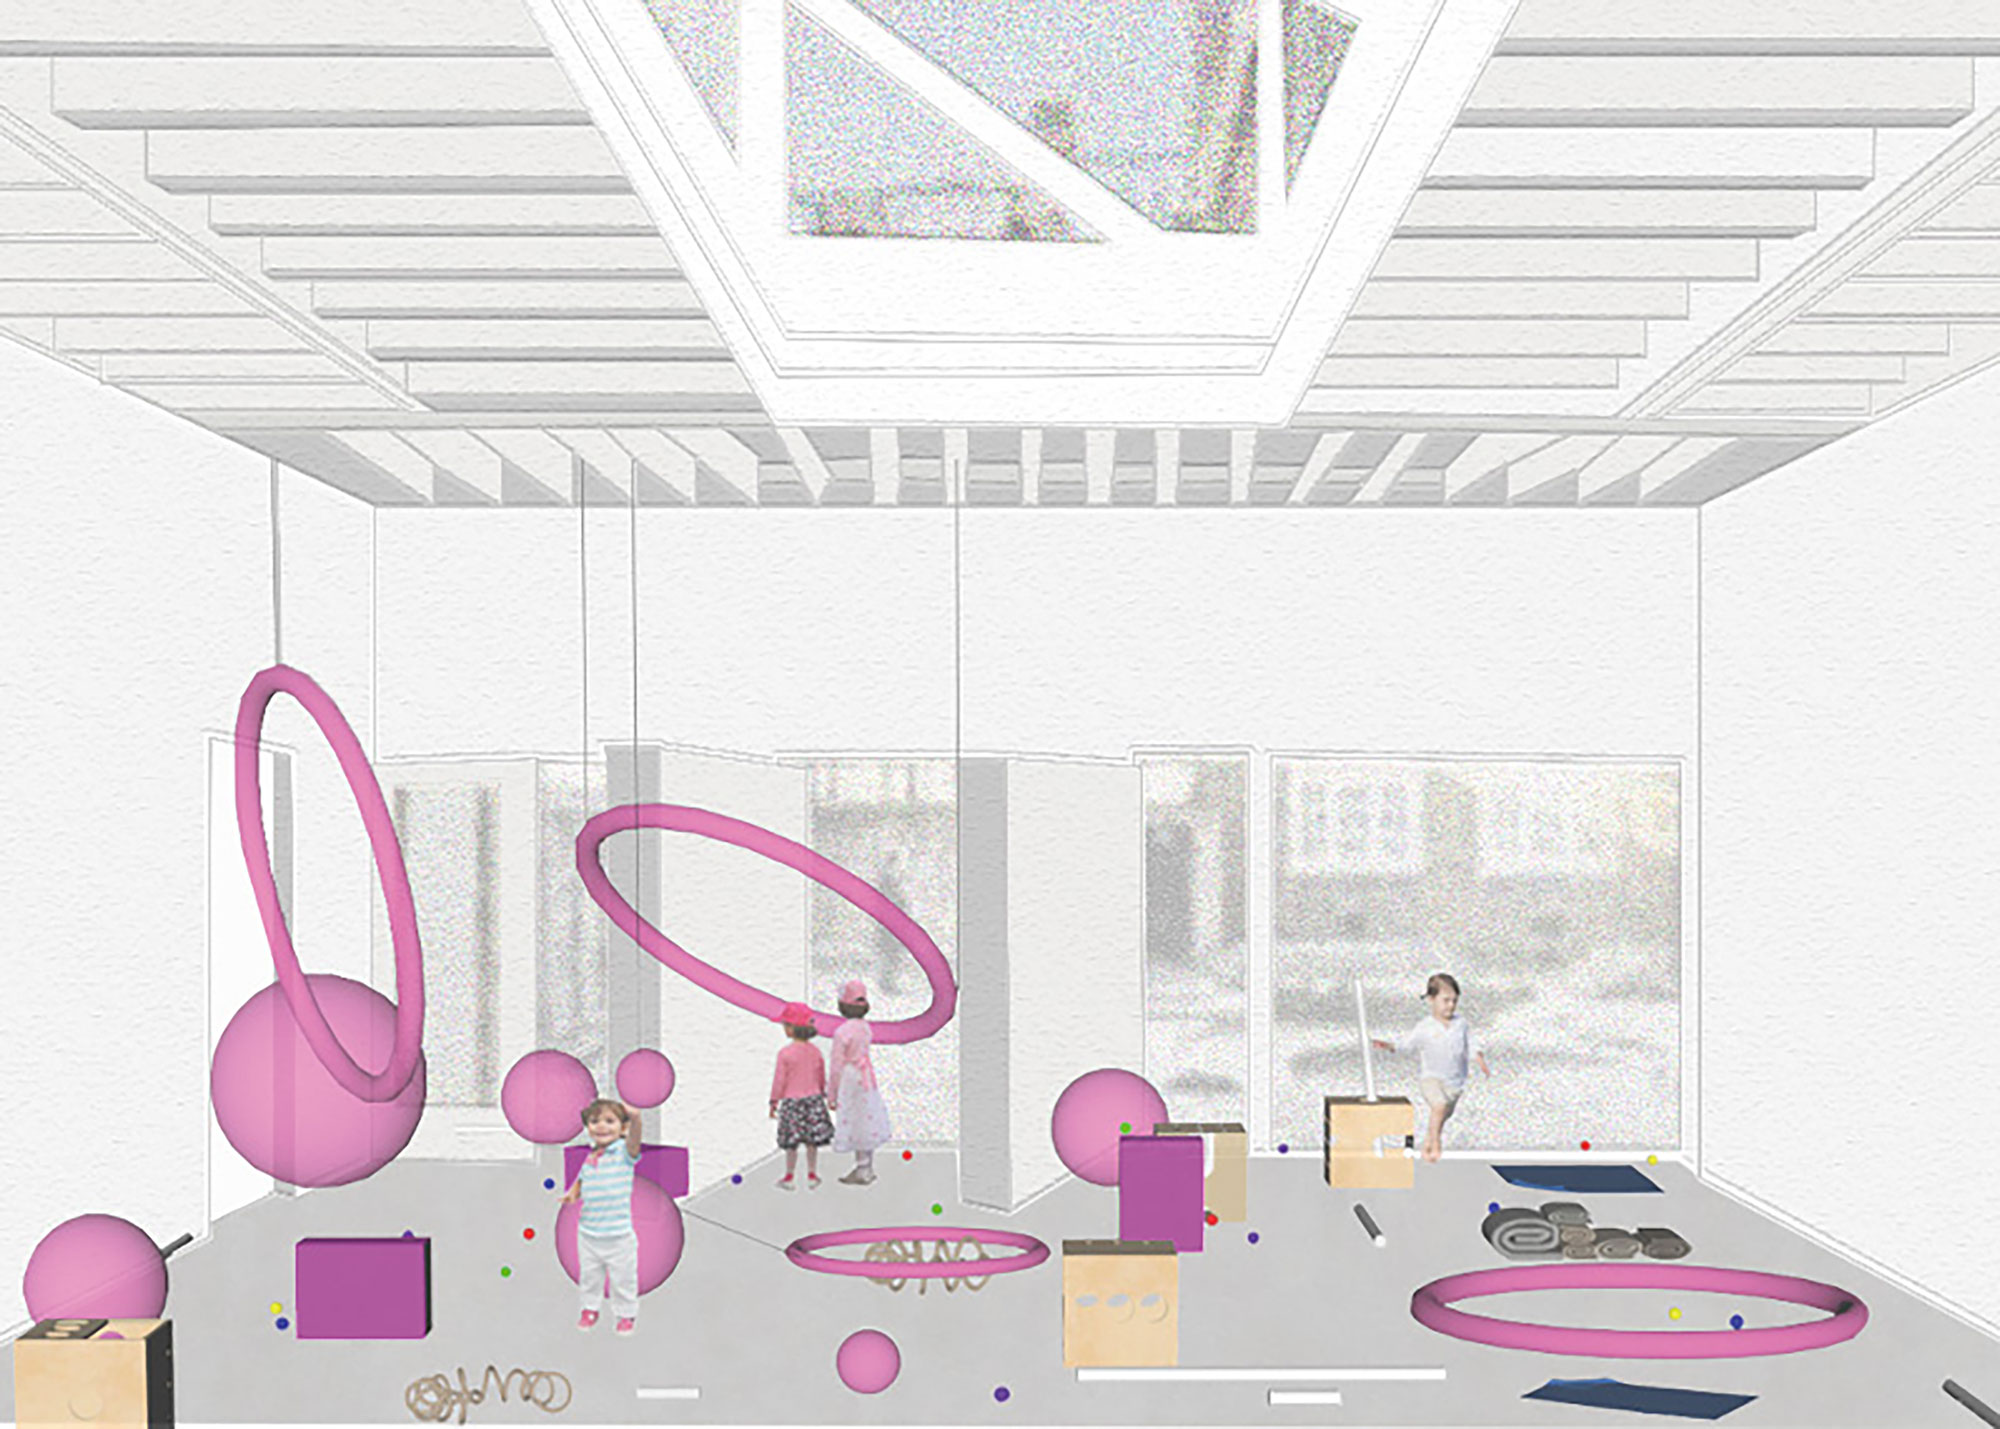 Digital rendering of play space at South London Gallery